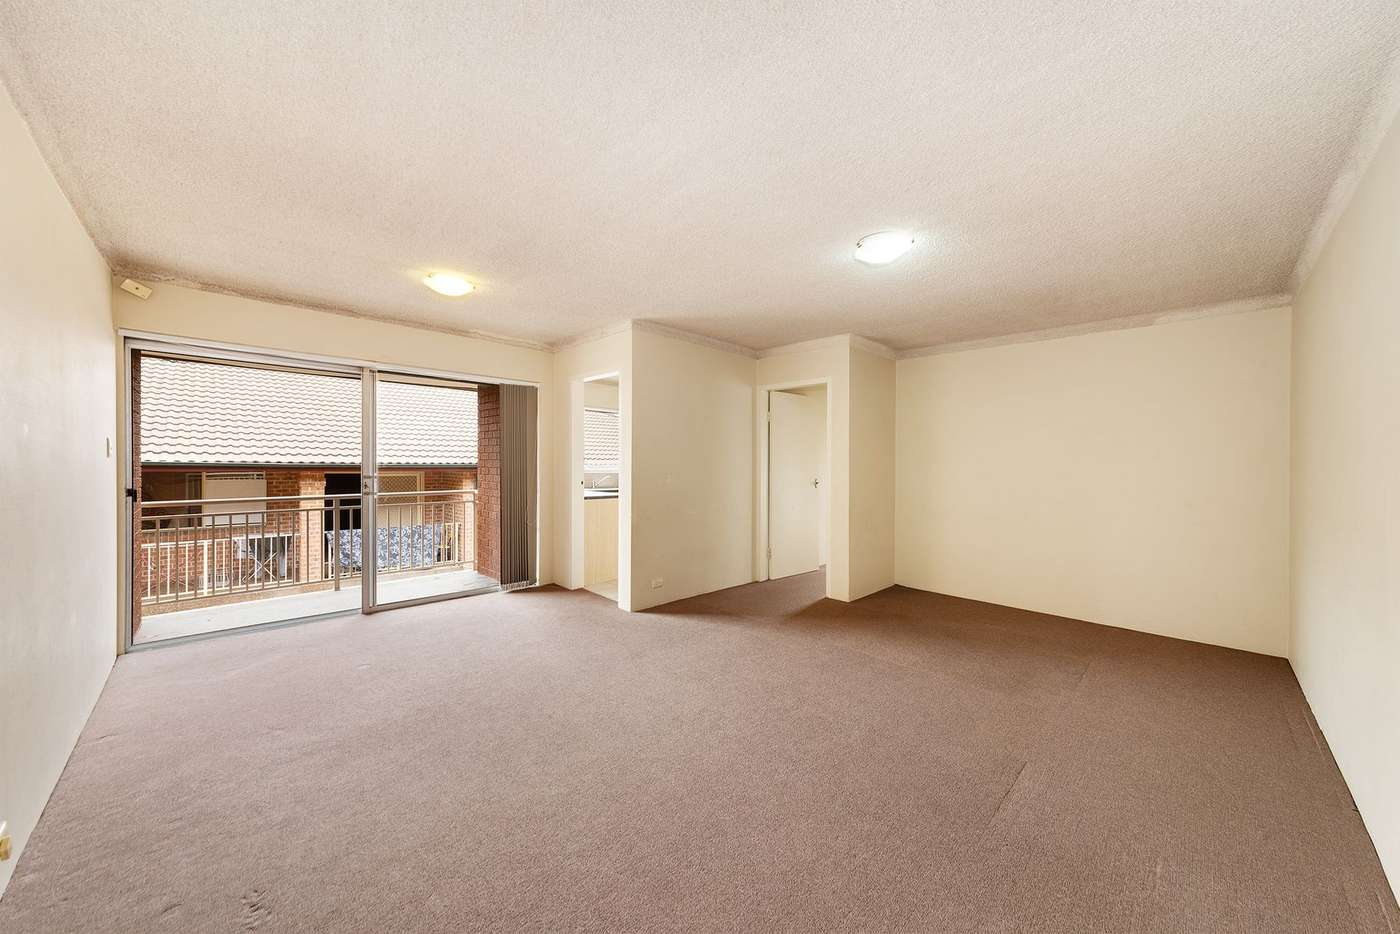 Main view of Homely apartment listing, 12/71 Weston Street, Harris Park NSW 2150